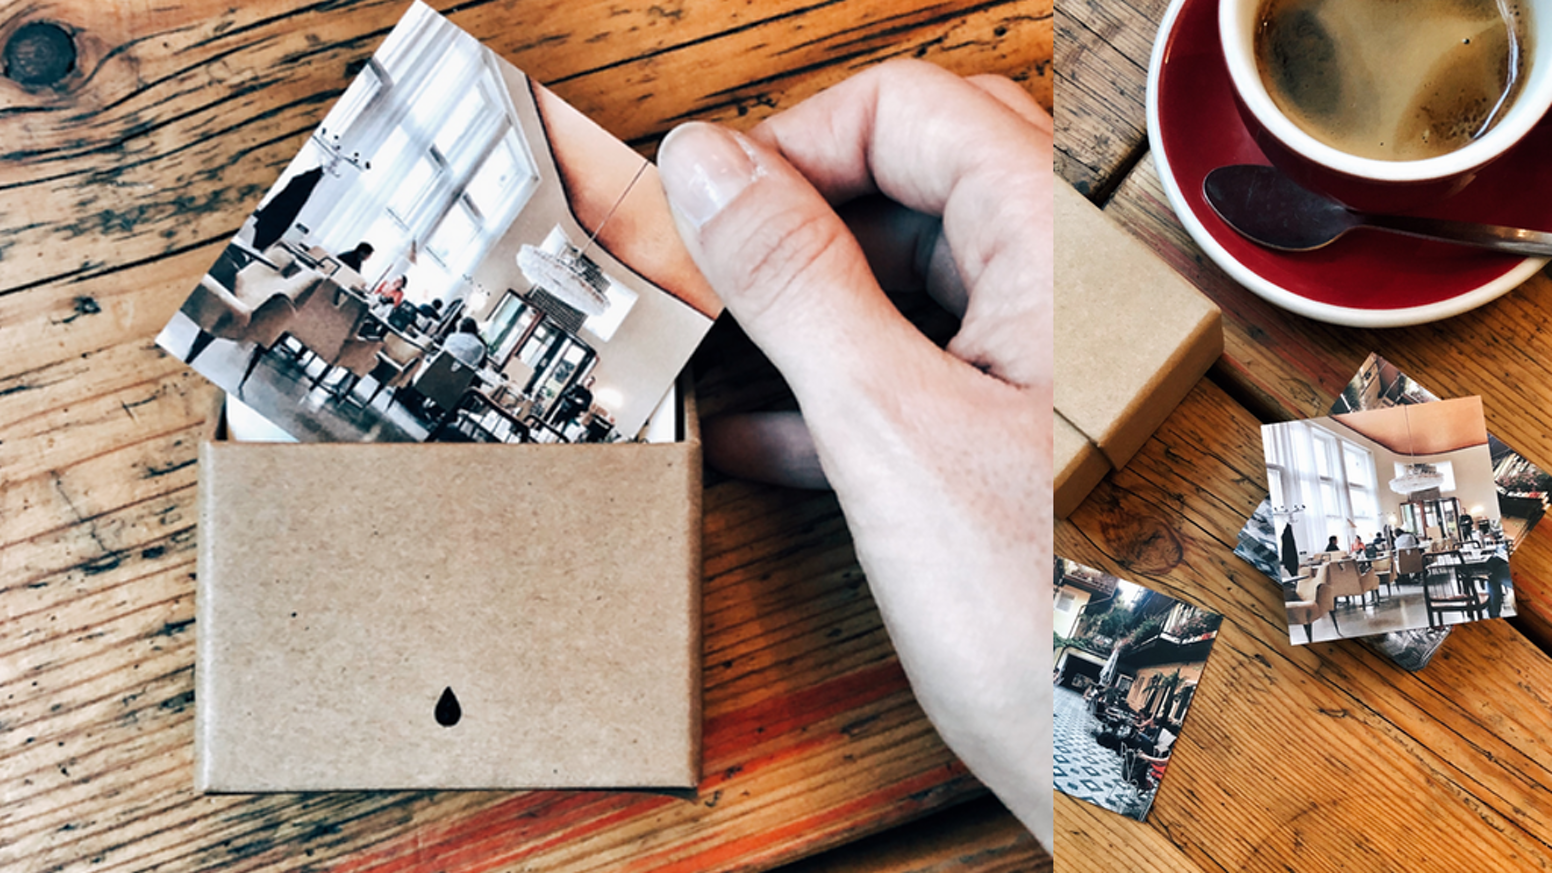 This Guide is now fully funded and I already started working on one about Berlin's coffee scene. Sign up below to get notified :)